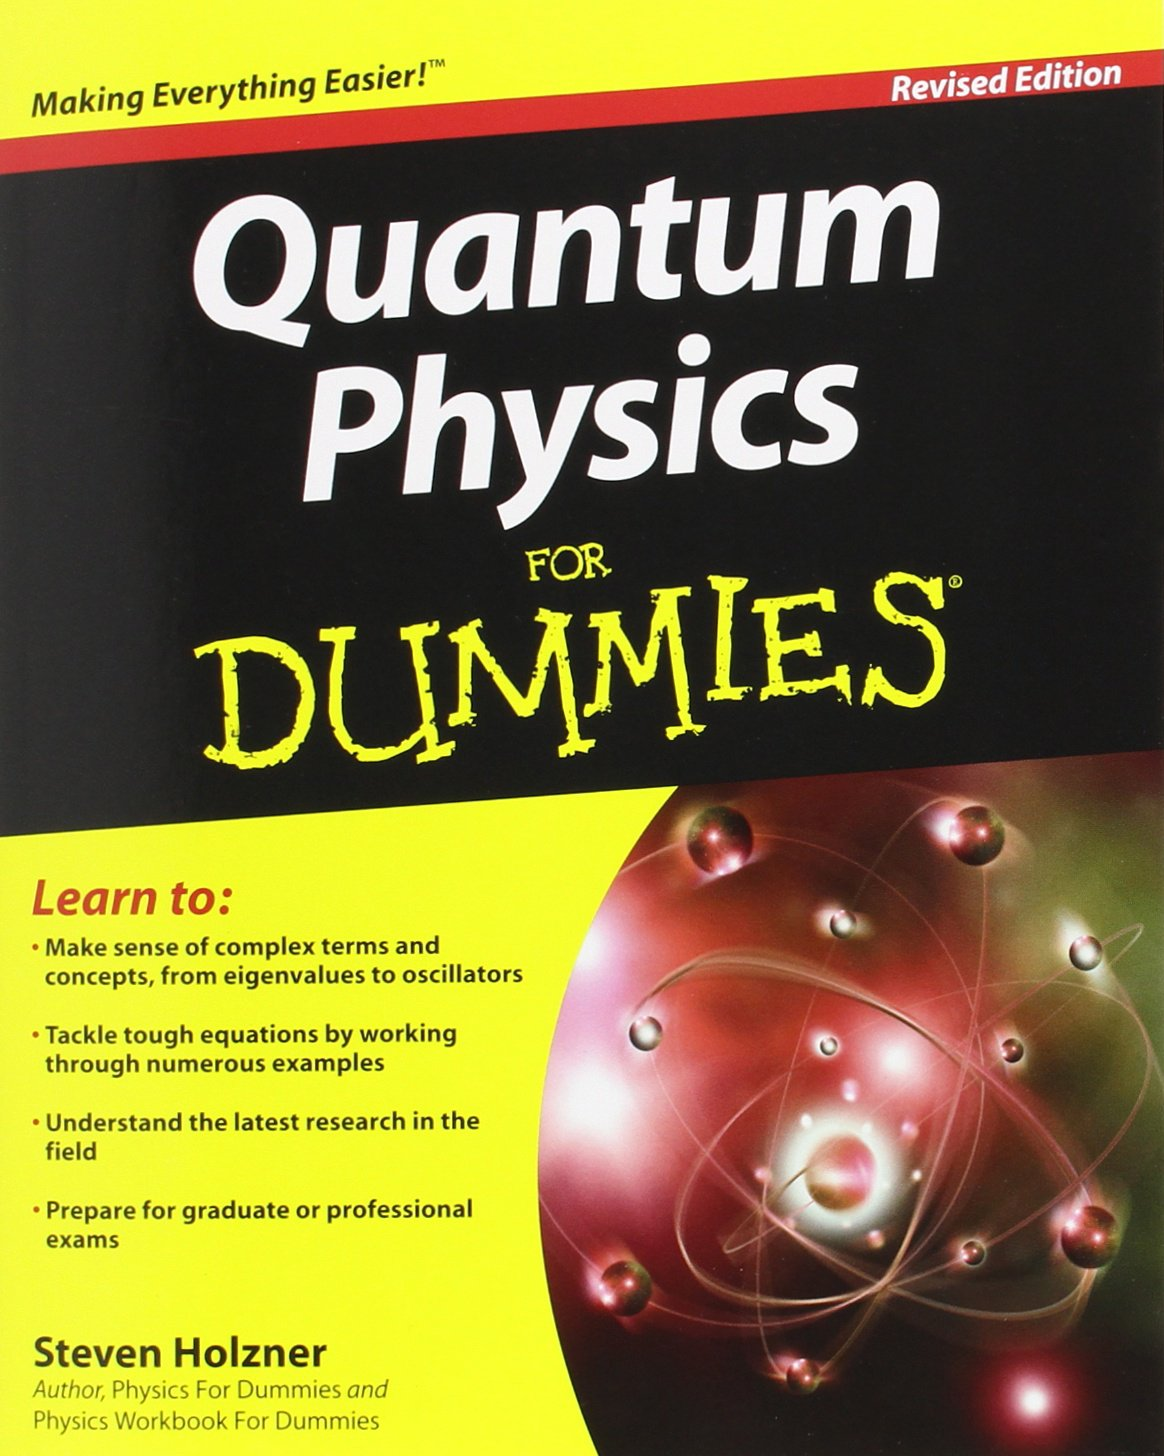 Buy quantum physics for dummies book online at low prices in india buy quantum physics for dummies book online at low prices in india quantum physics for dummies reviews ratings amazon 1betcityfo Image collections